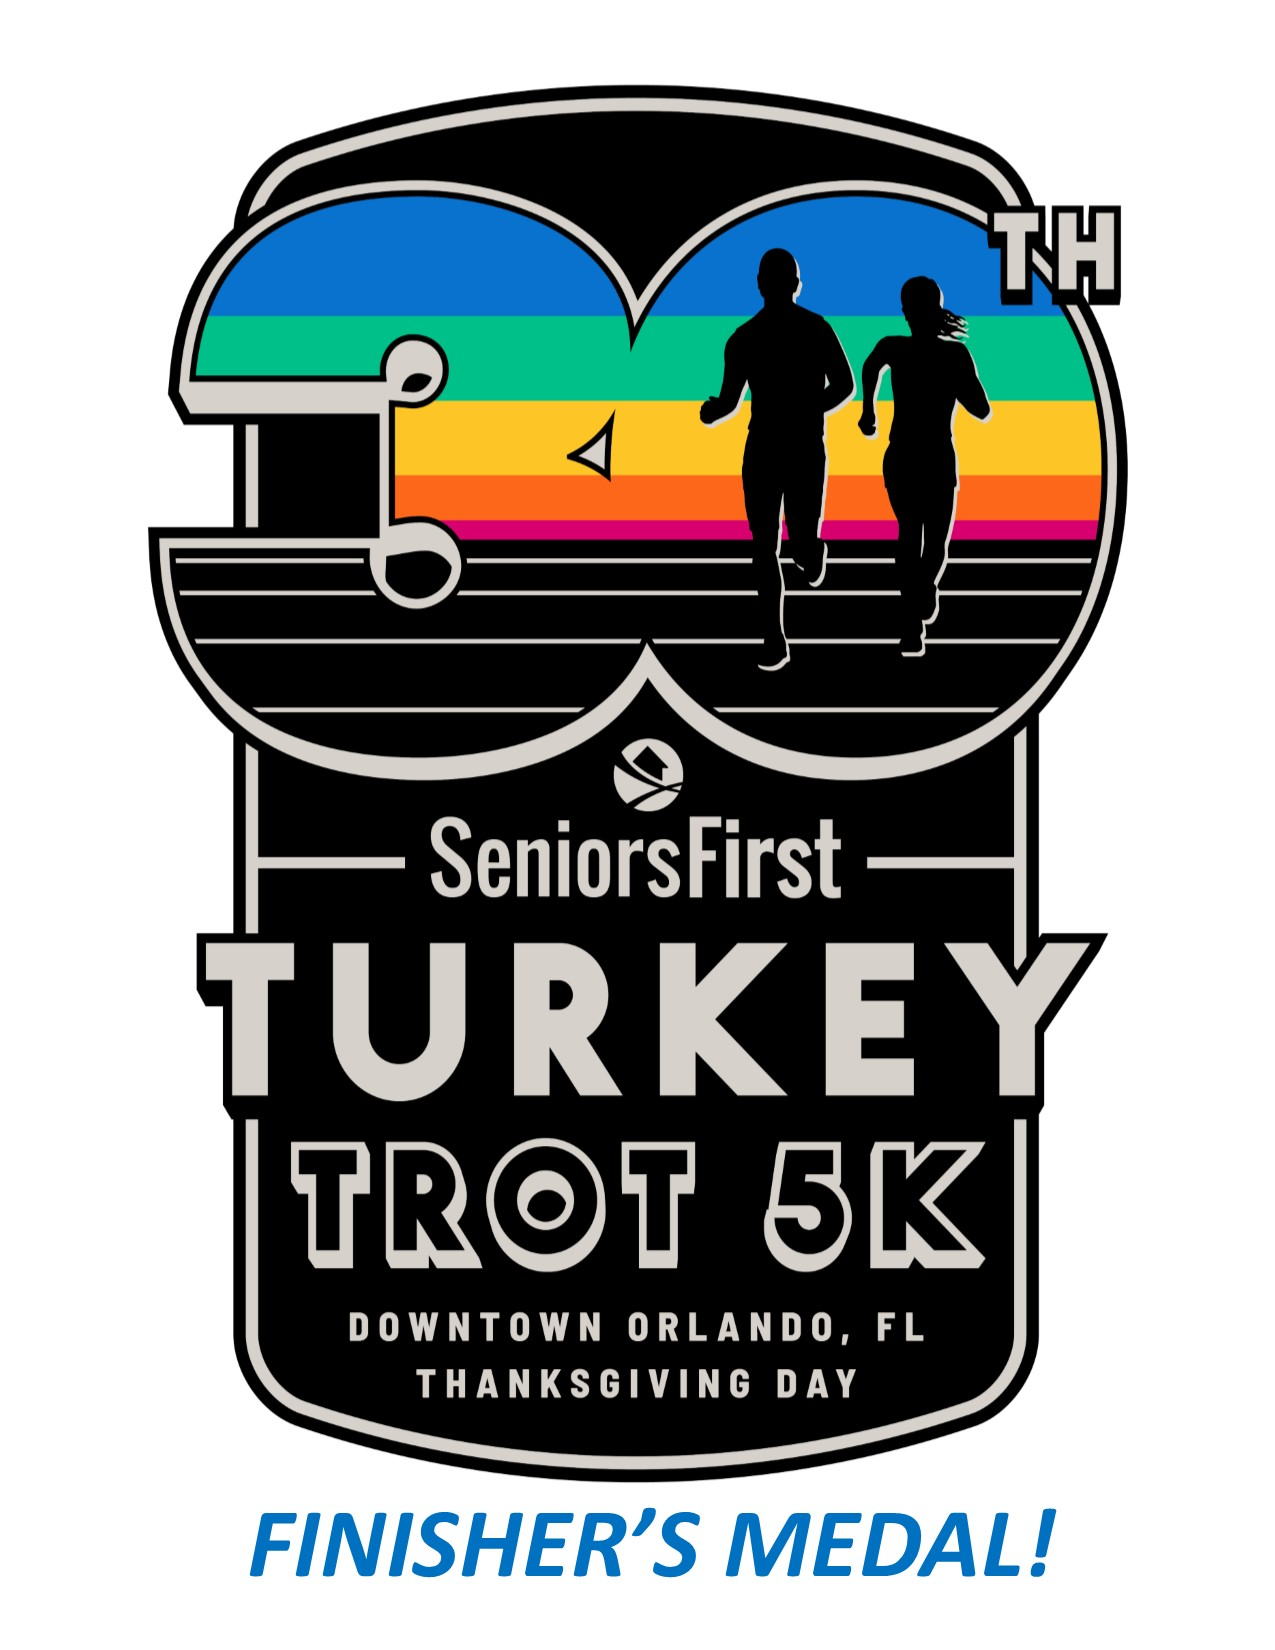 Seniors First Turkey Trot 5k